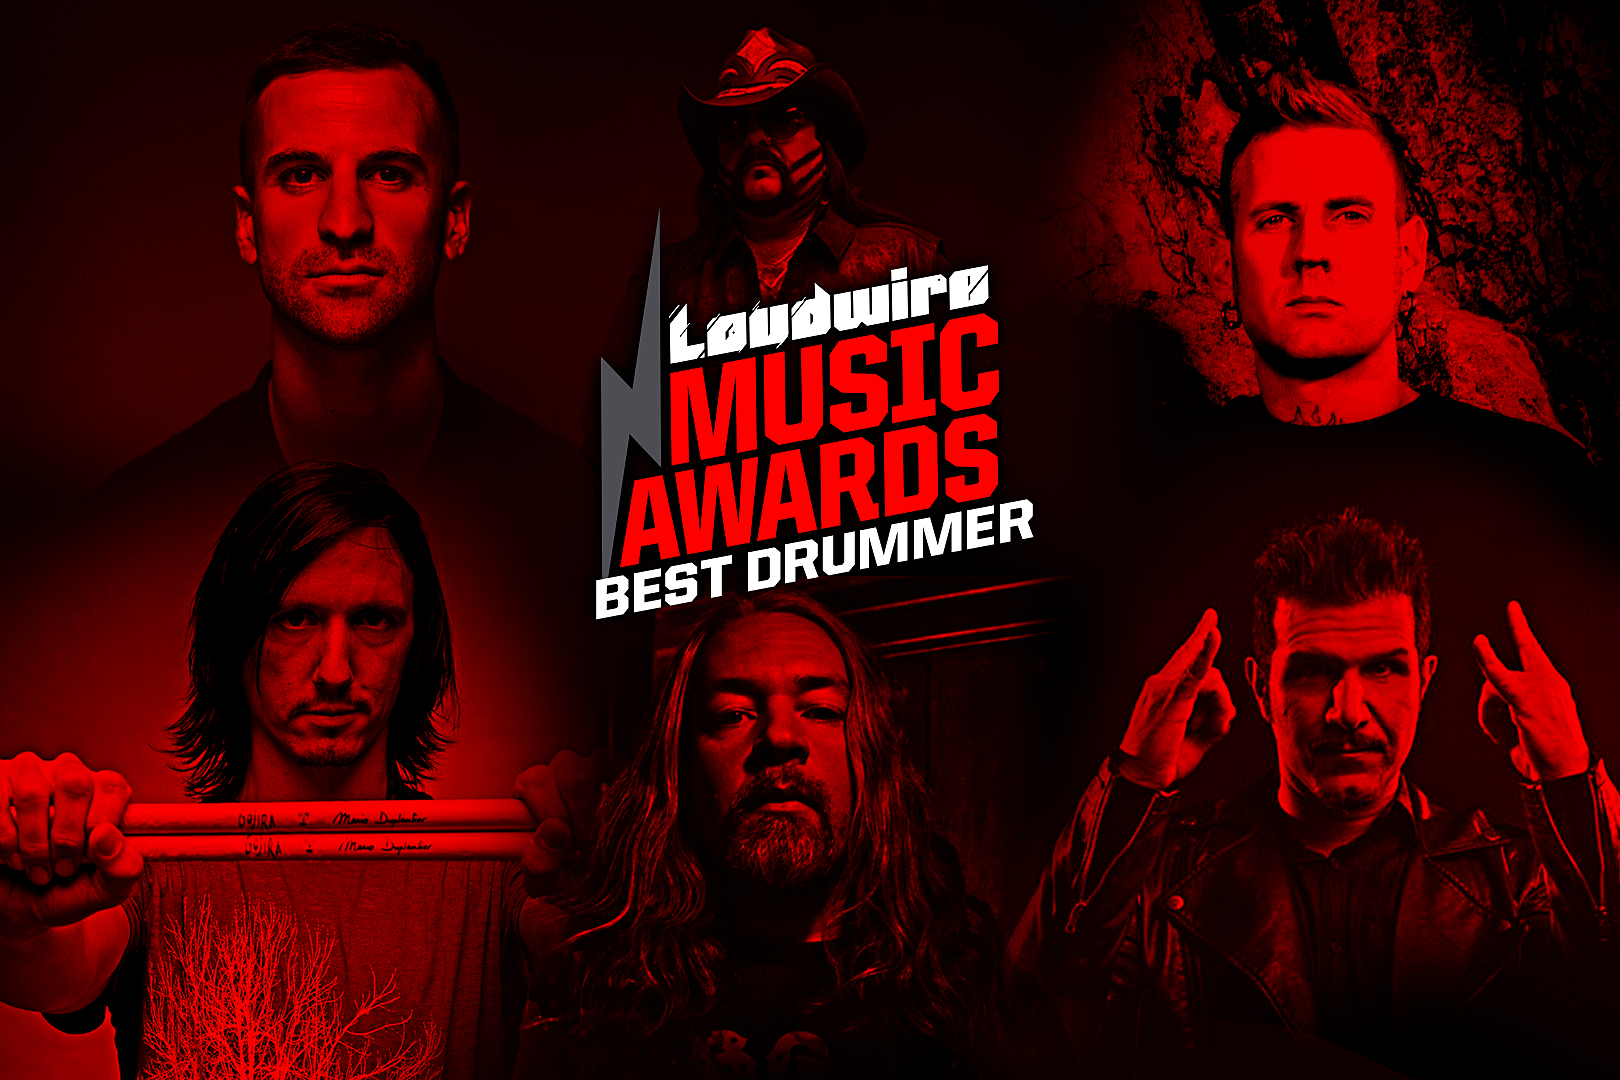 Vote for the Best Drummer – 2017 Loudwire Music Awards